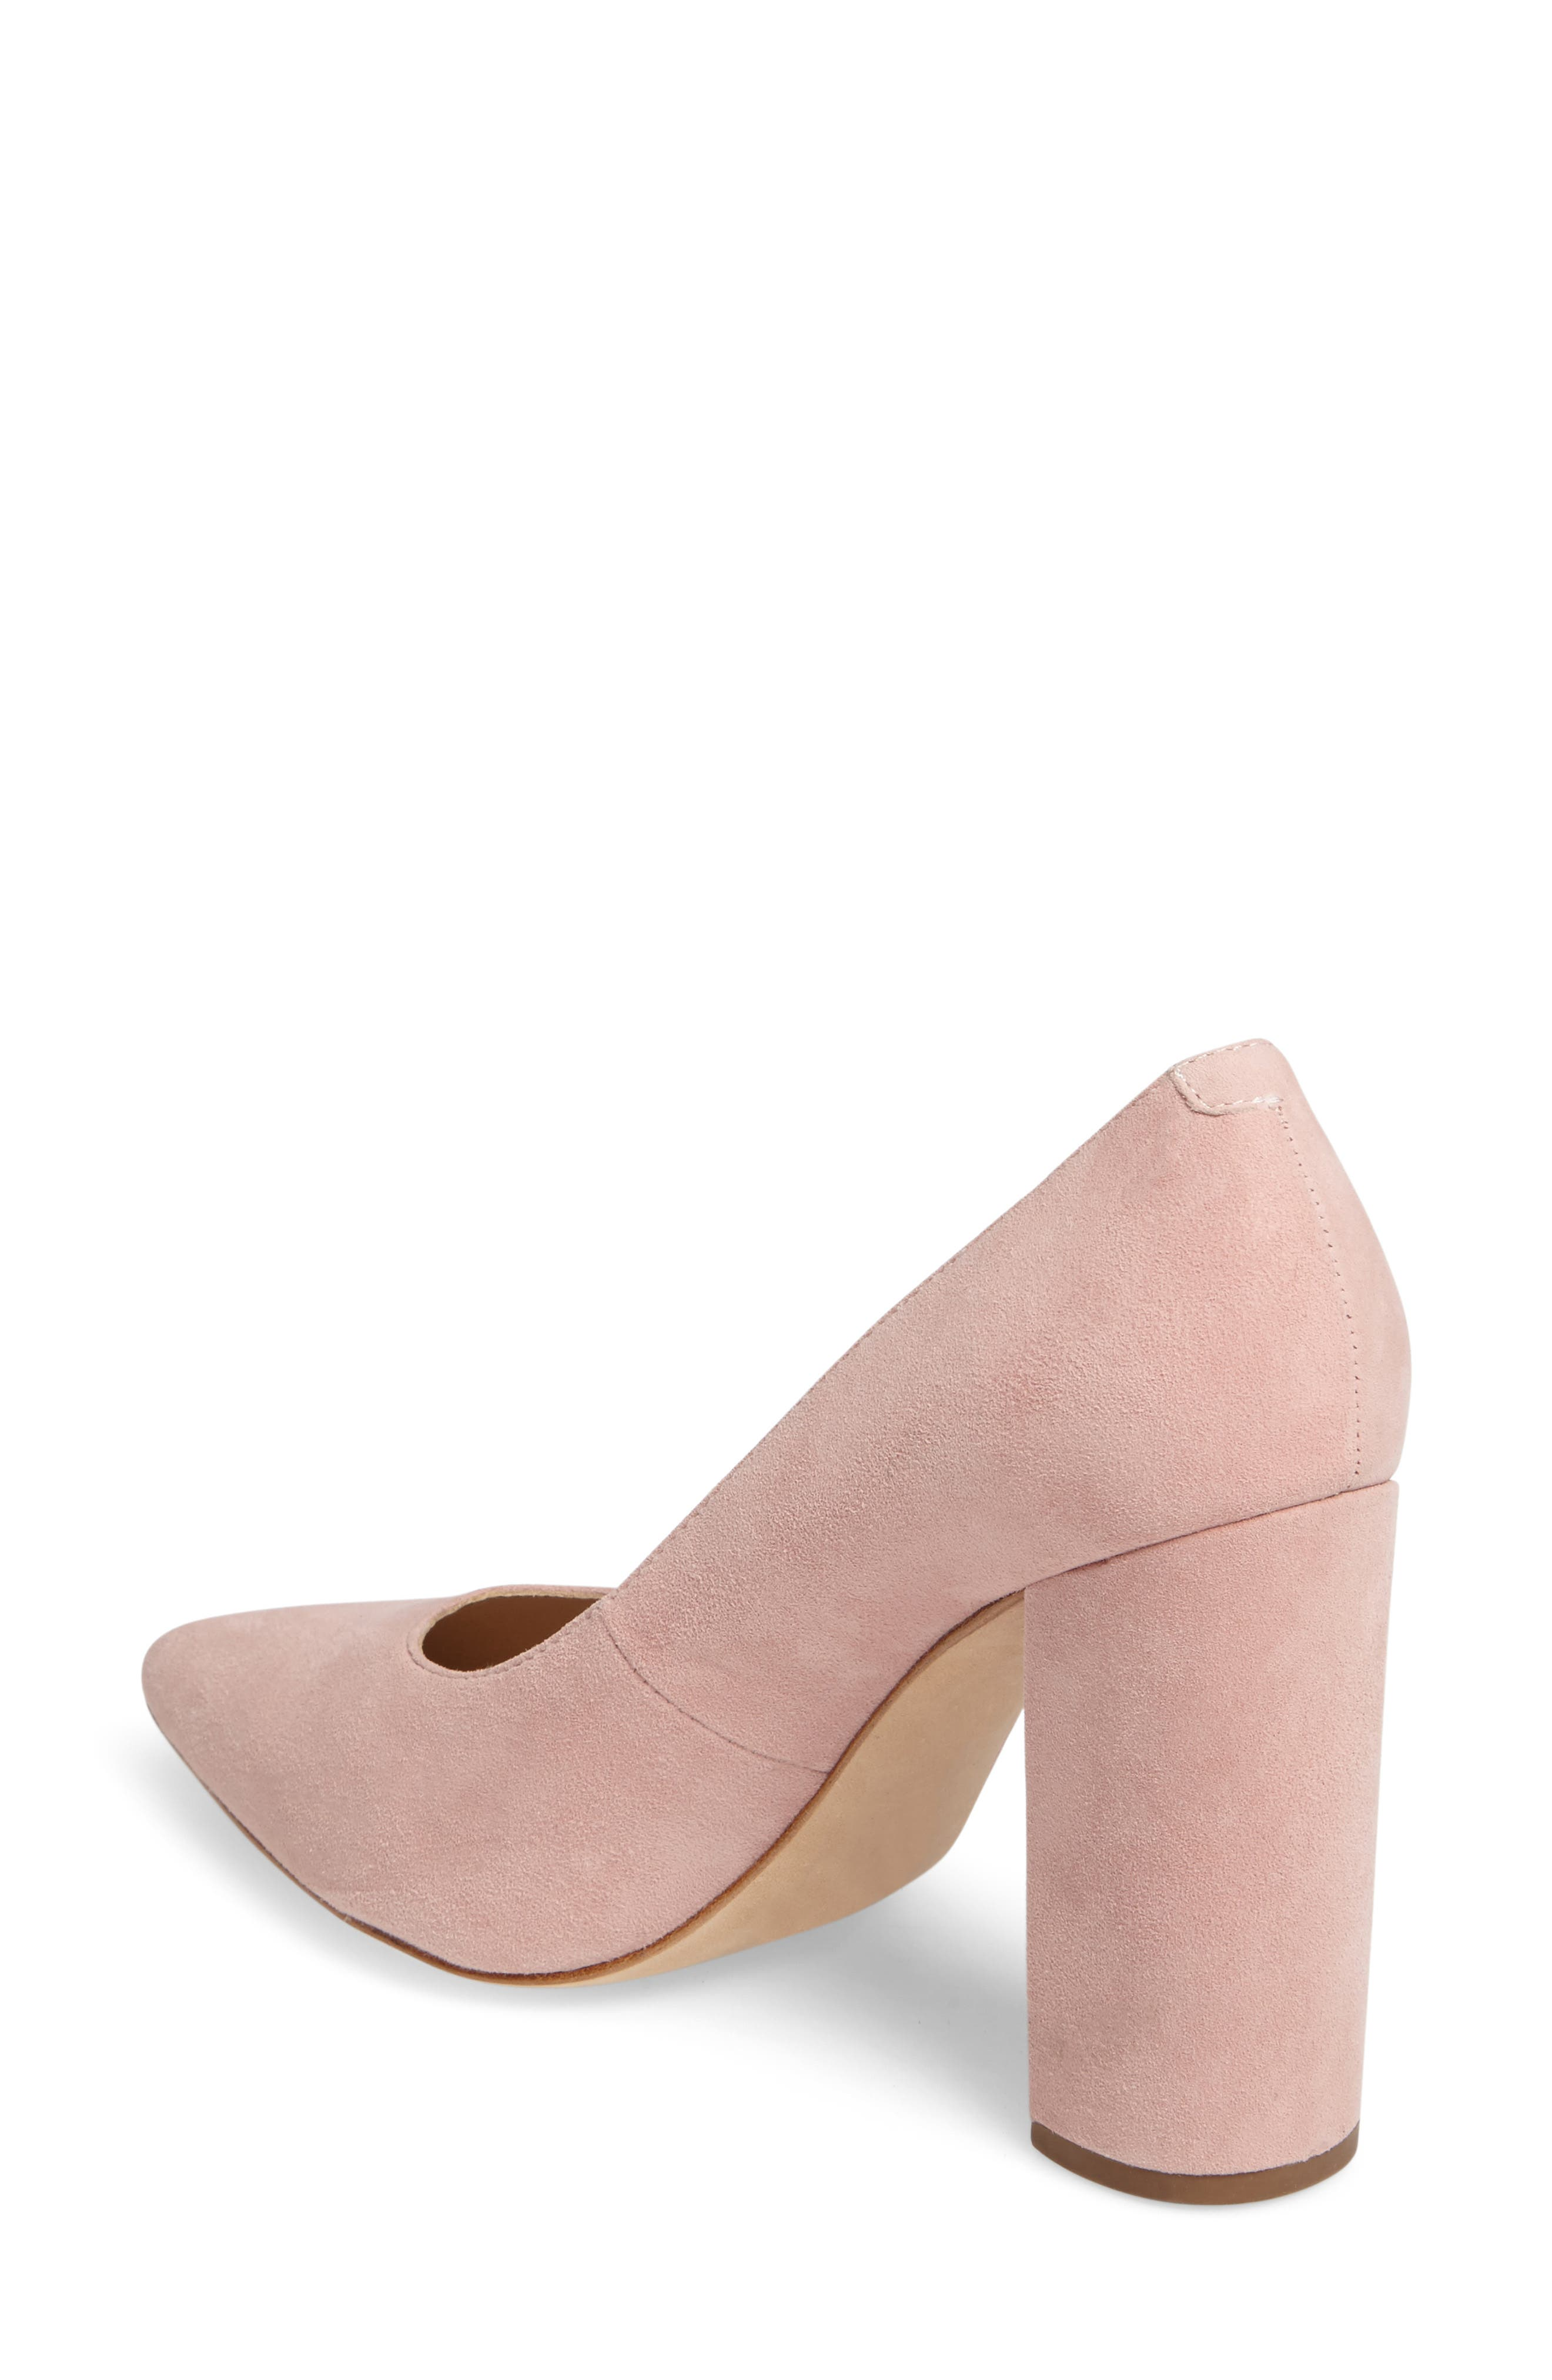 'Celina' Pointy Toe Pump,                             Alternate thumbnail 11, color,